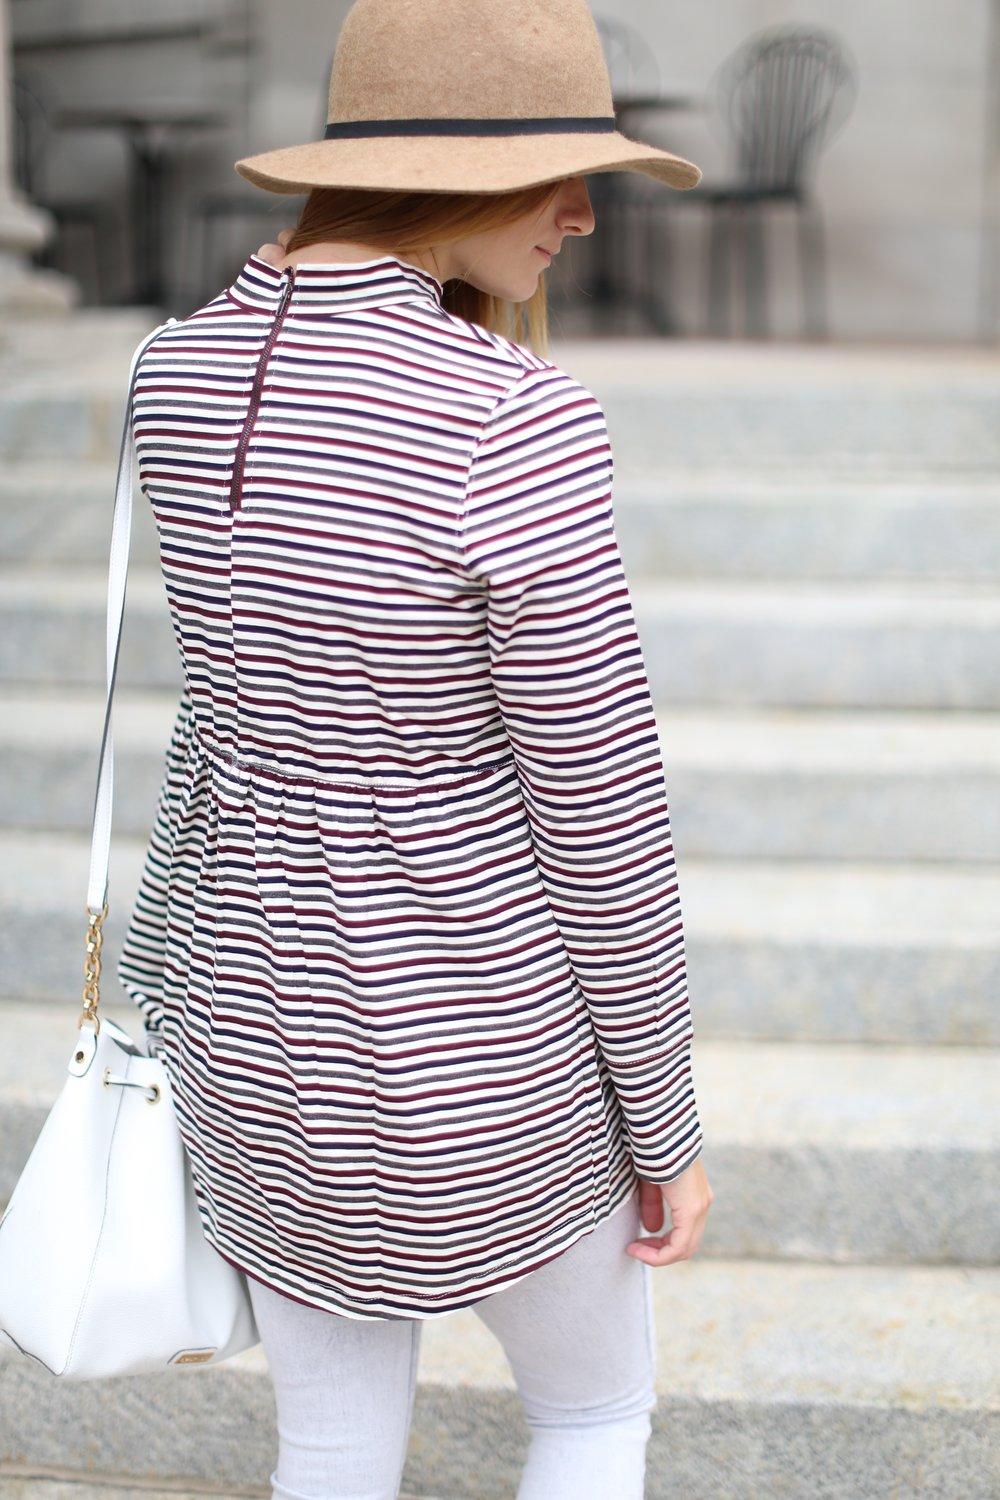 Striped Babydoll Top + Grey Jeans + Felt Hat | Katelyn Now